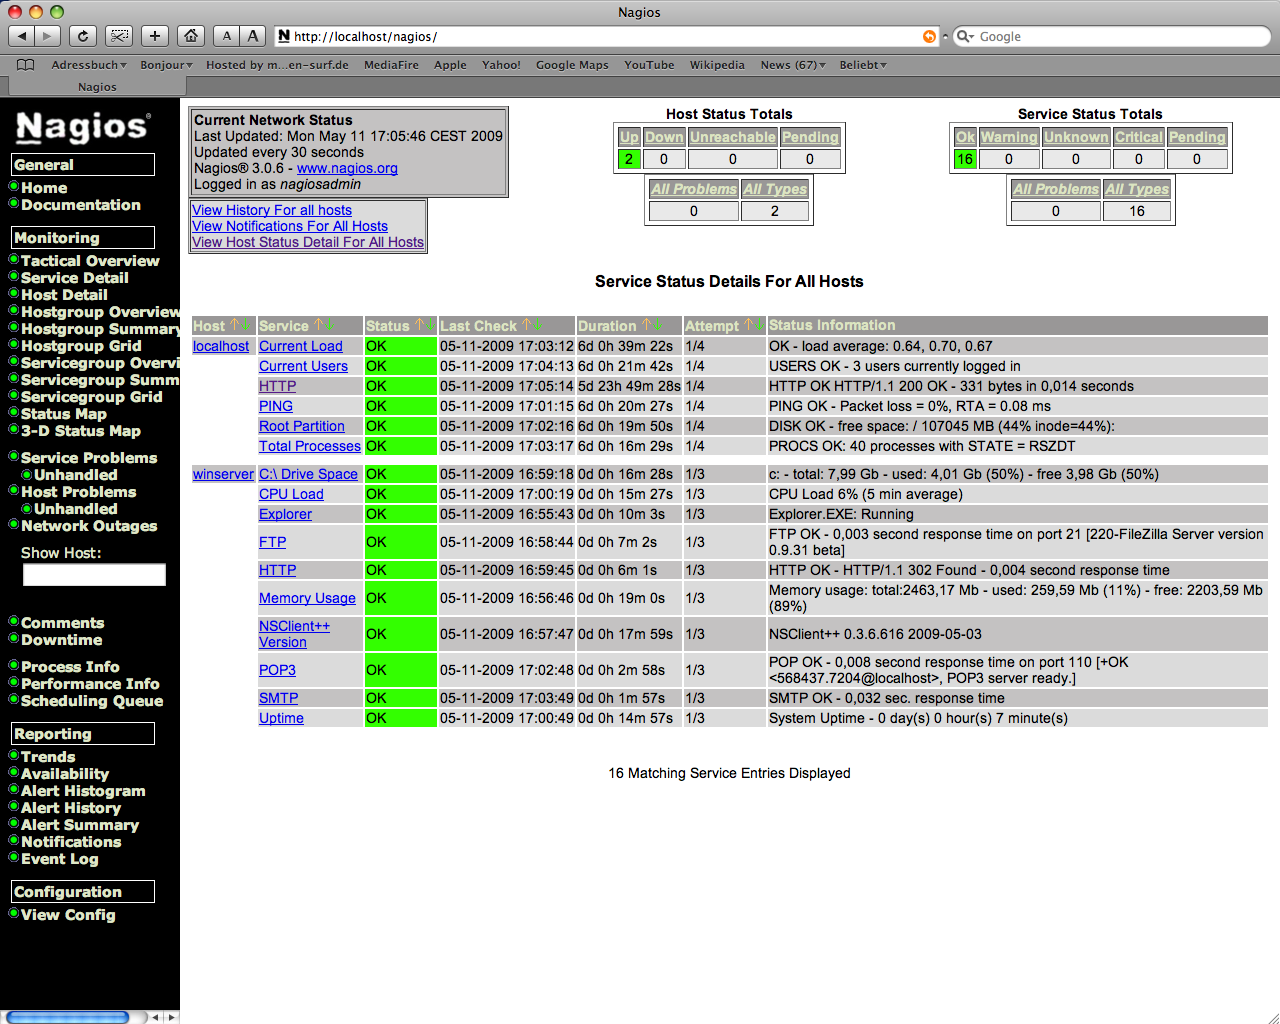 Service and Host Status via Nagios